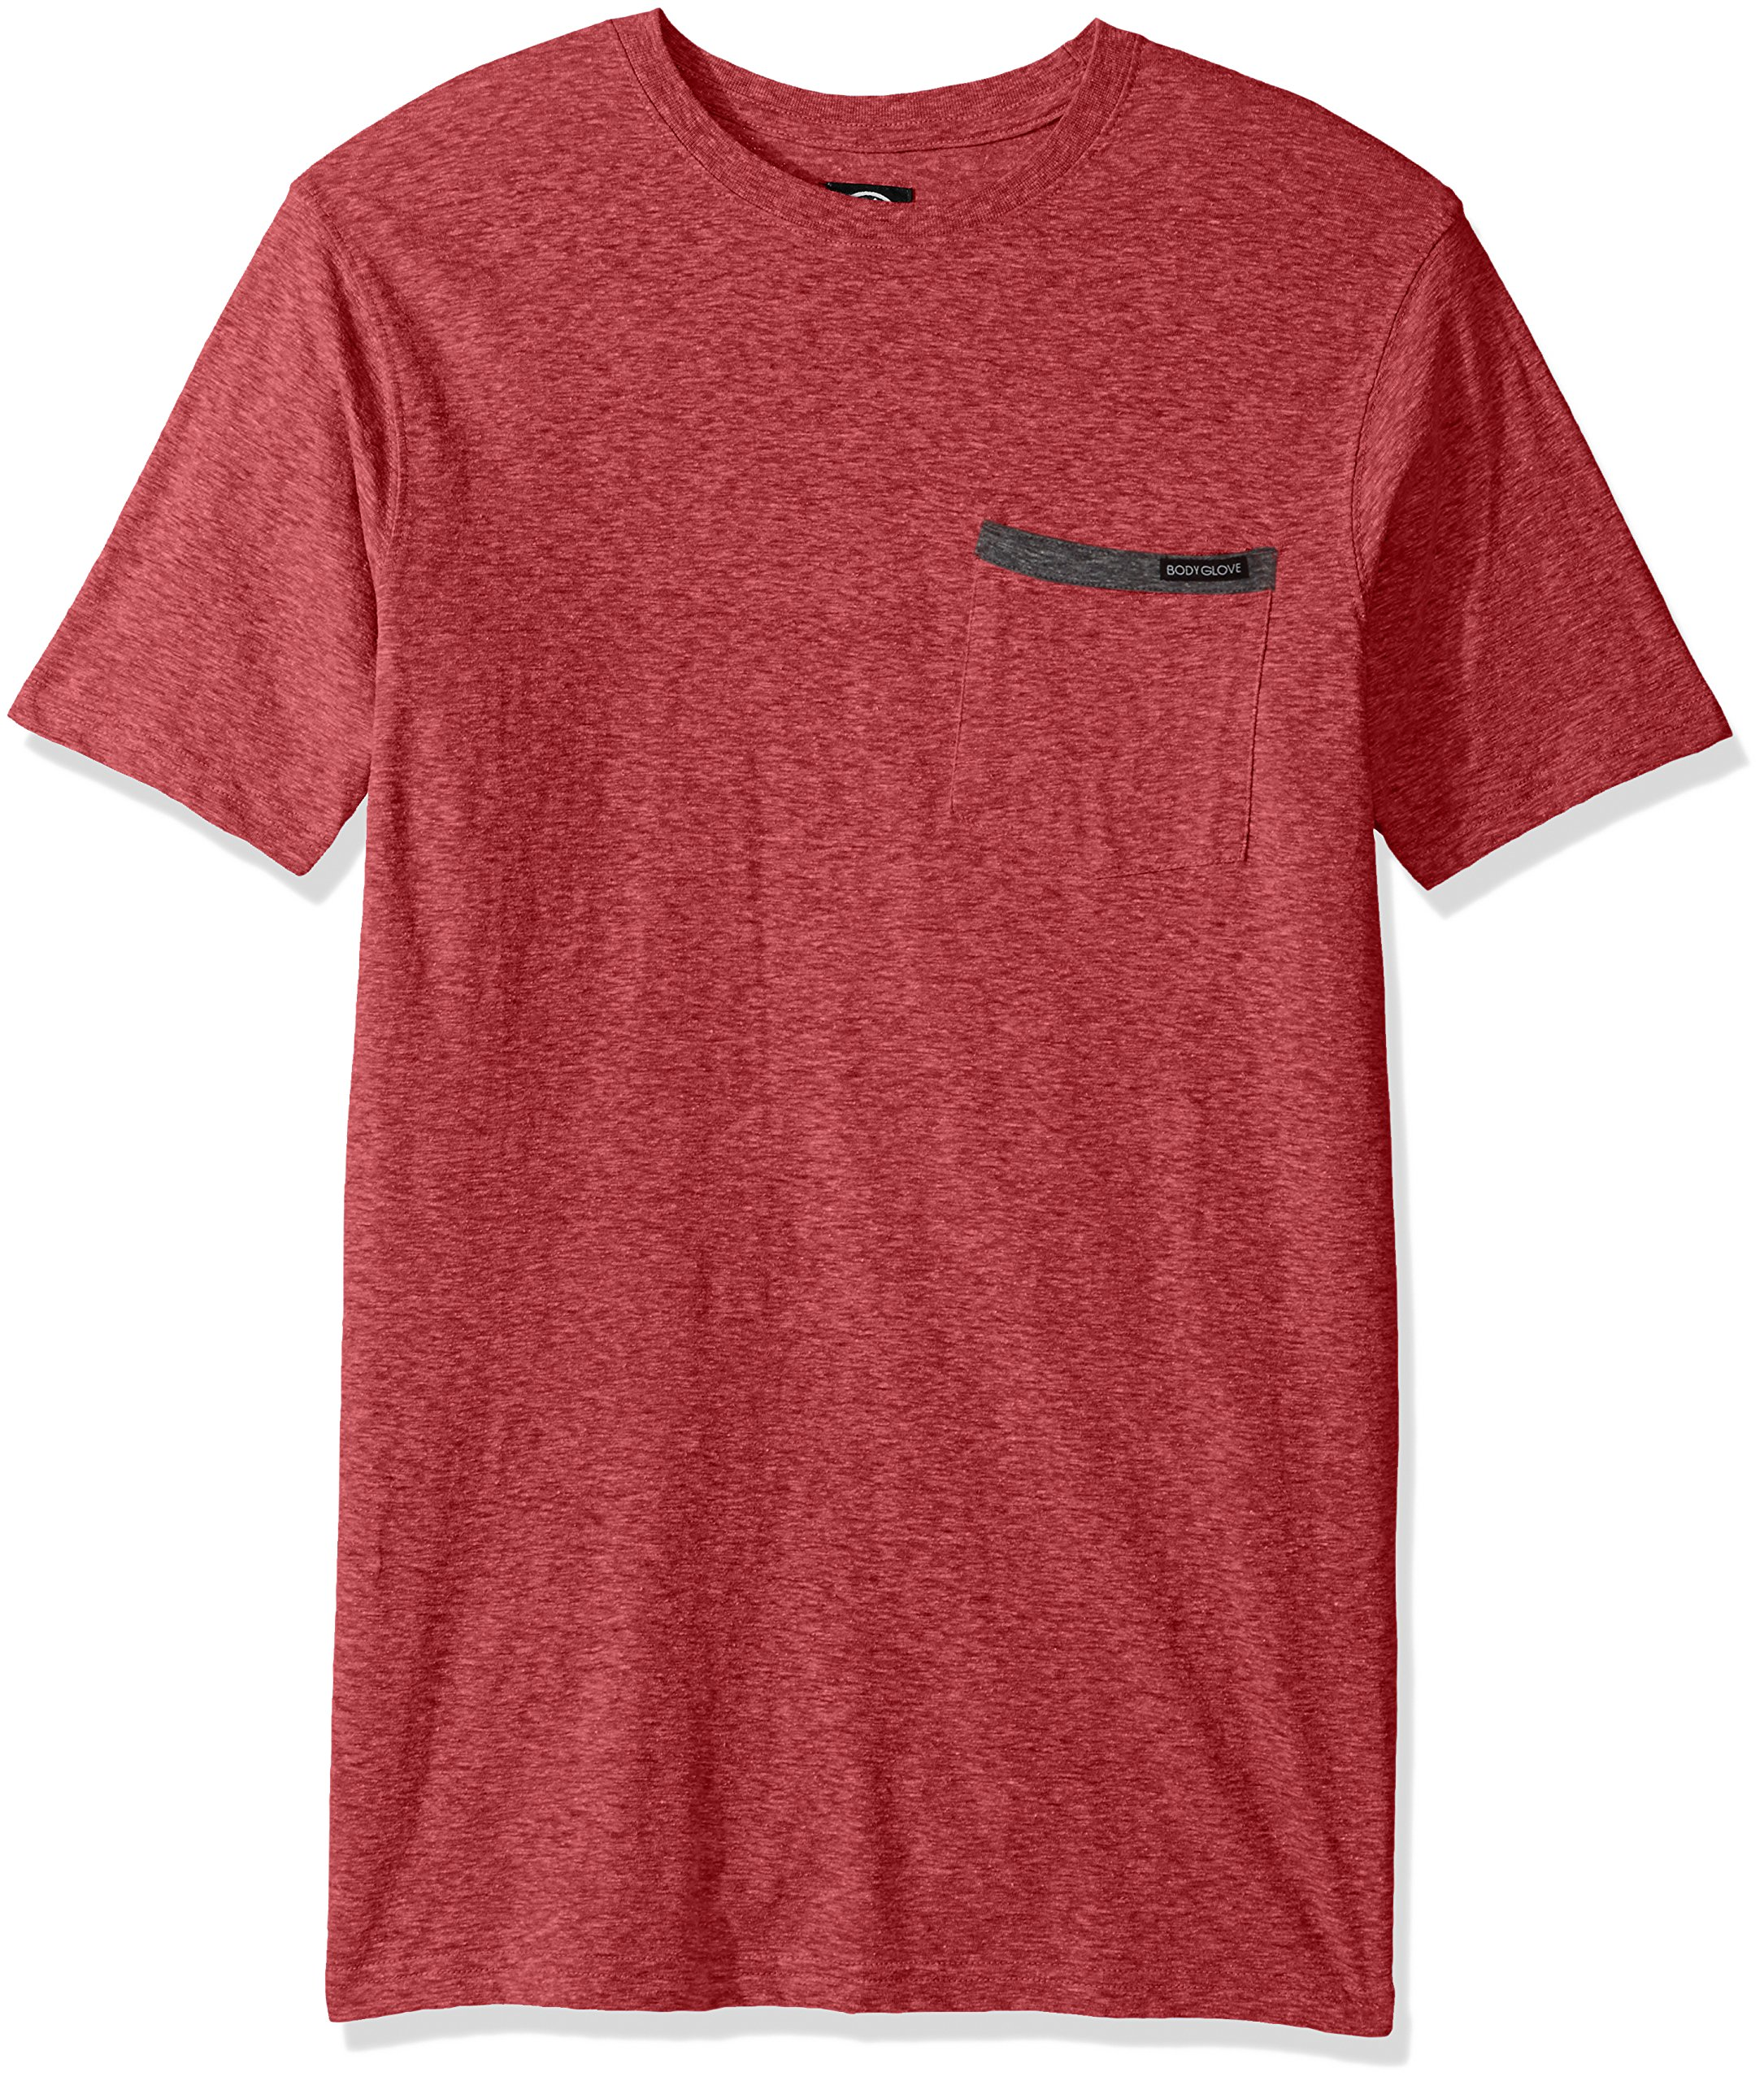 Body Glove Men's Cotton Polyester Pocket Short Sleeve T-Shirt, Red Snow Heather, X-Large by Body Glove (Image #1)